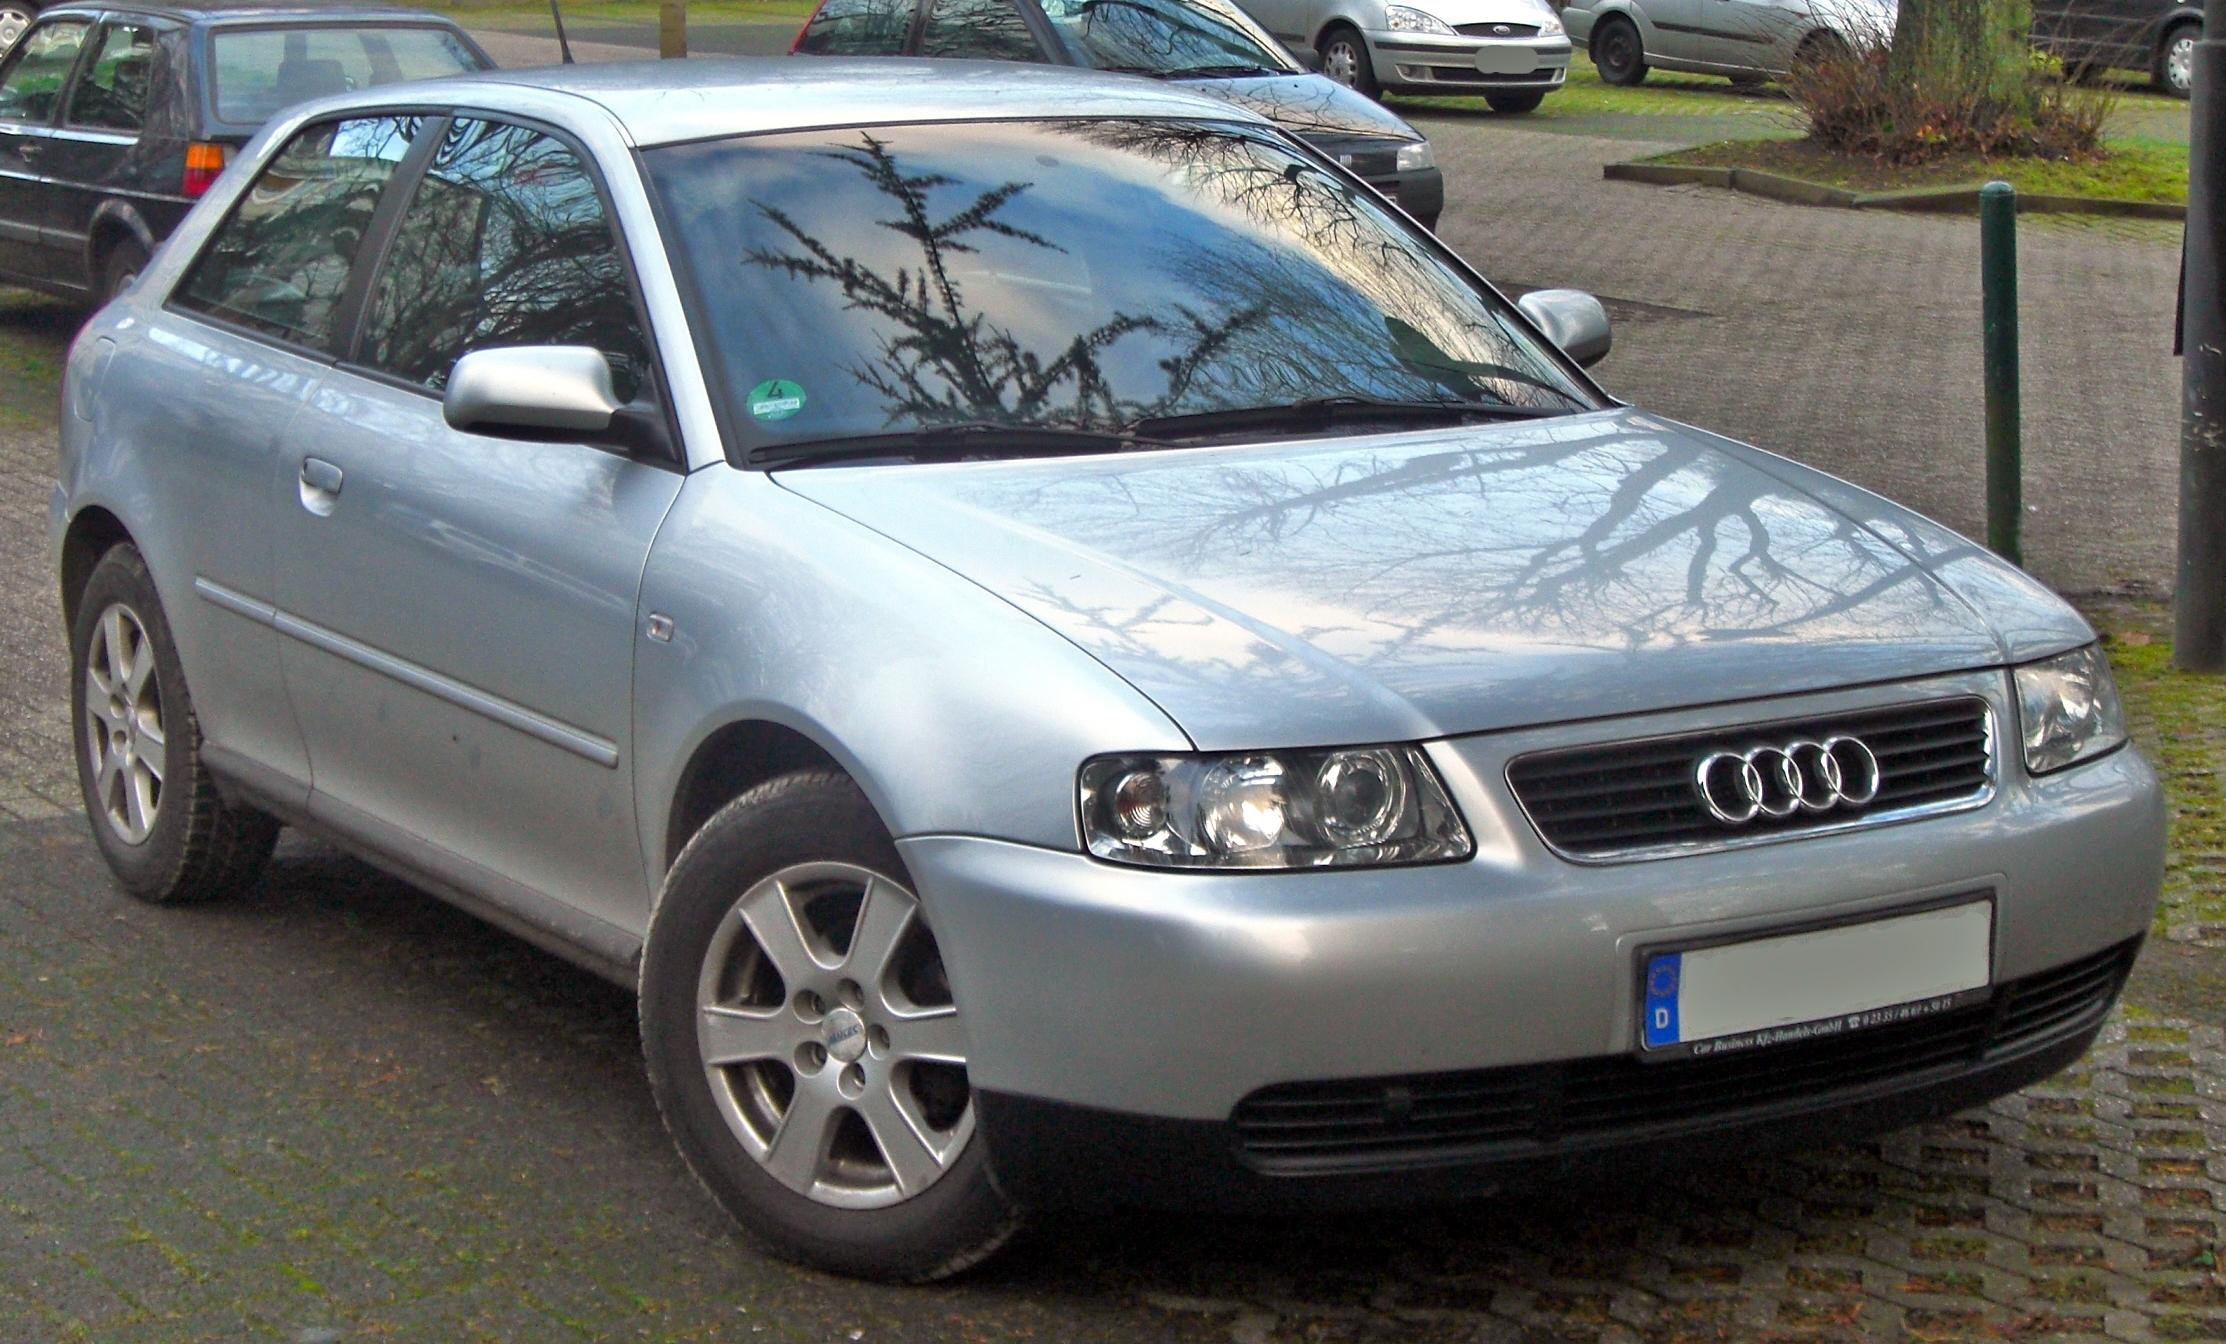 file audi a3 i facelift 2000 2003 front mj jpg wikimedia commons. Black Bedroom Furniture Sets. Home Design Ideas